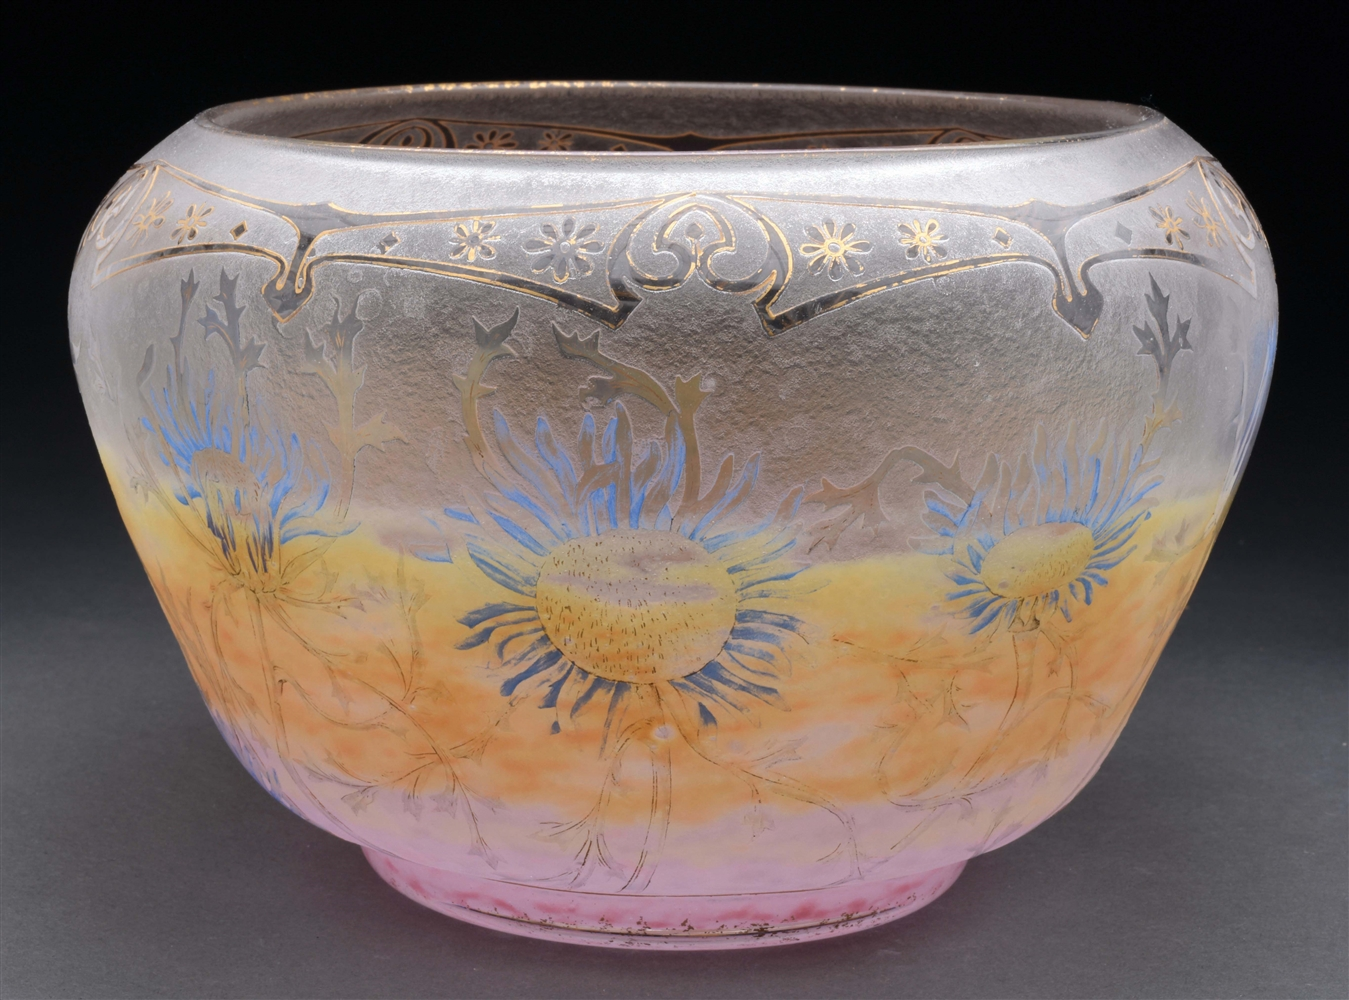 Daum Cameo and Enameled Thistle Bowl.